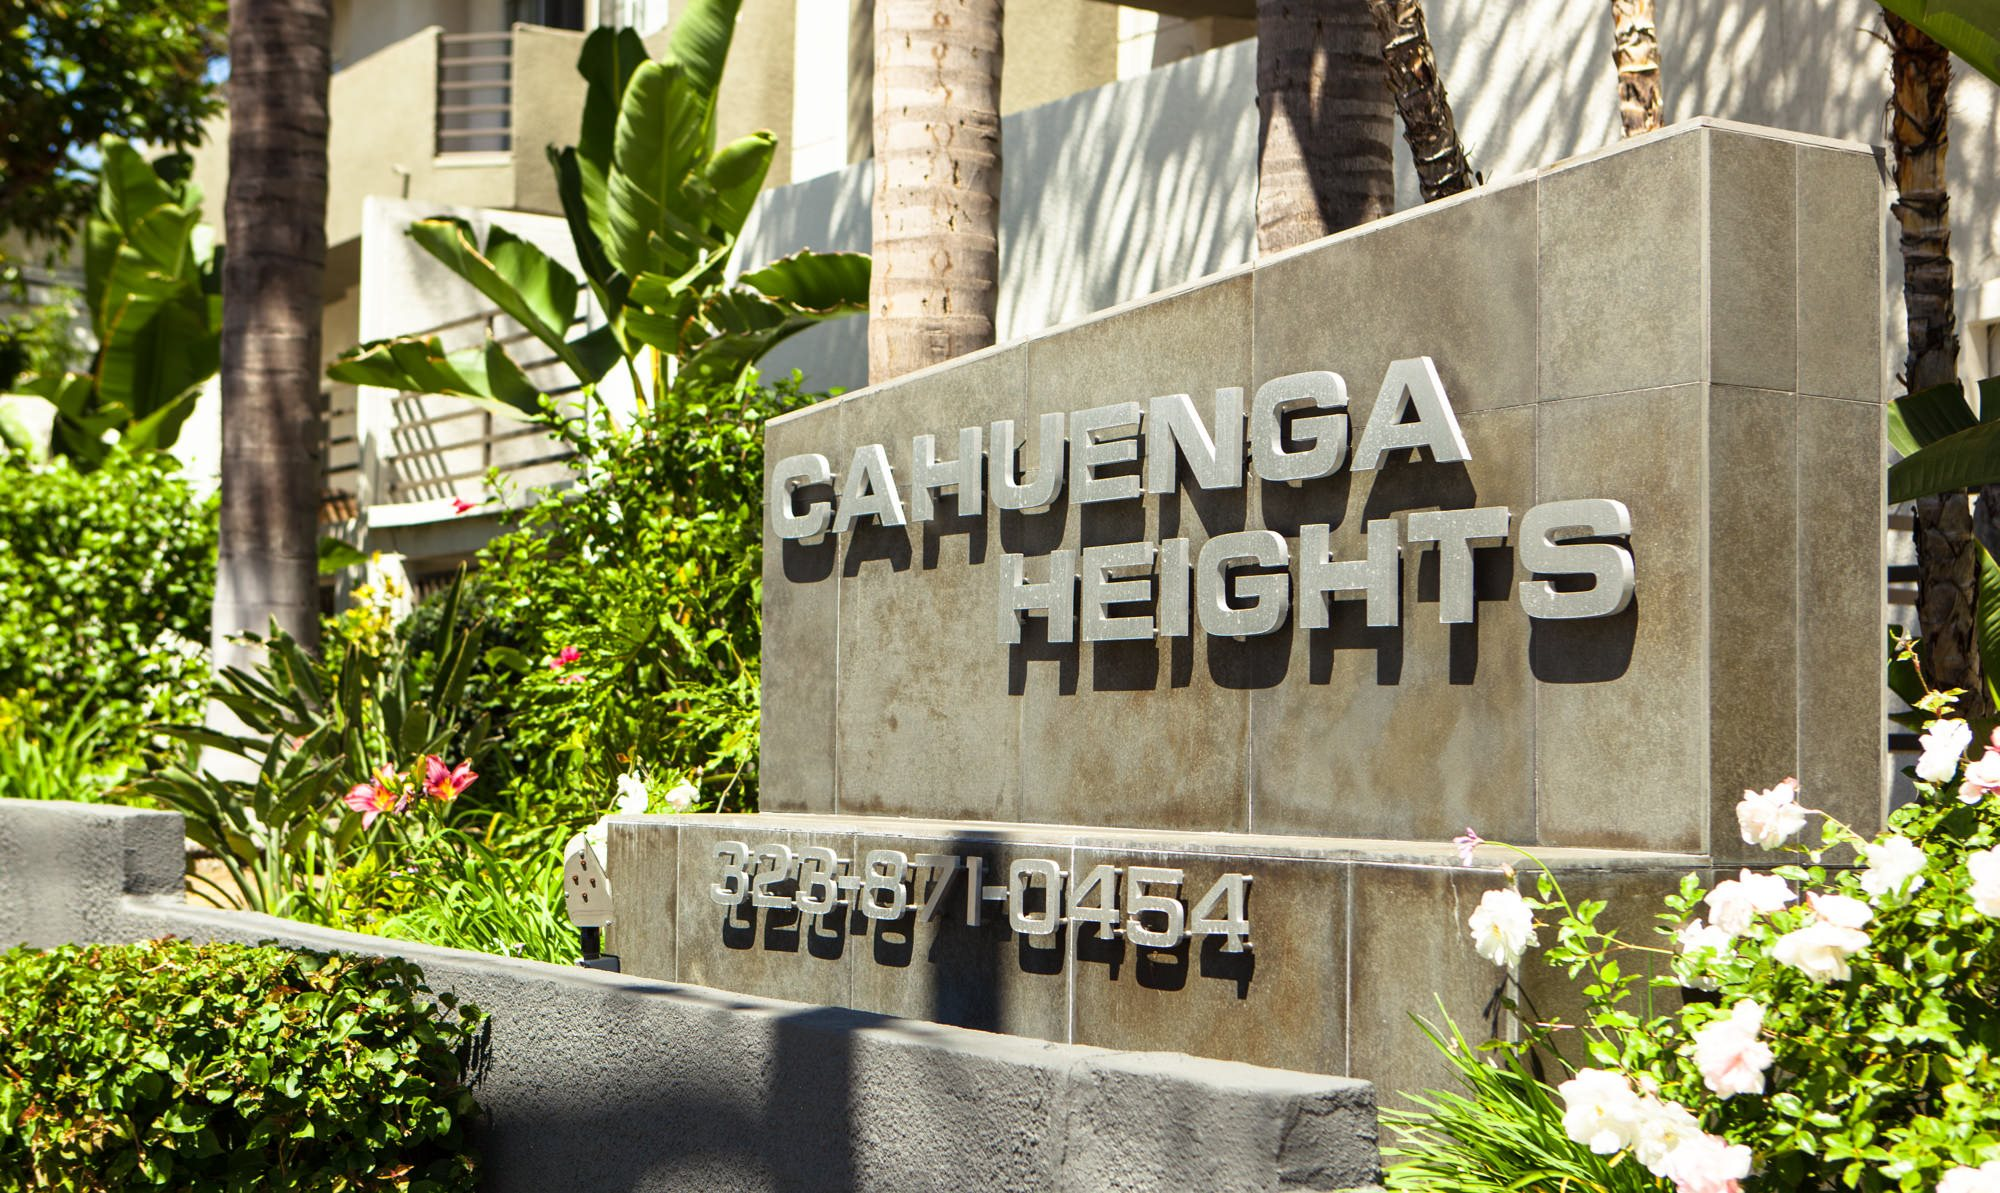 Cahuenga Heights Apartments in Hollywood, Los Angeles, CA